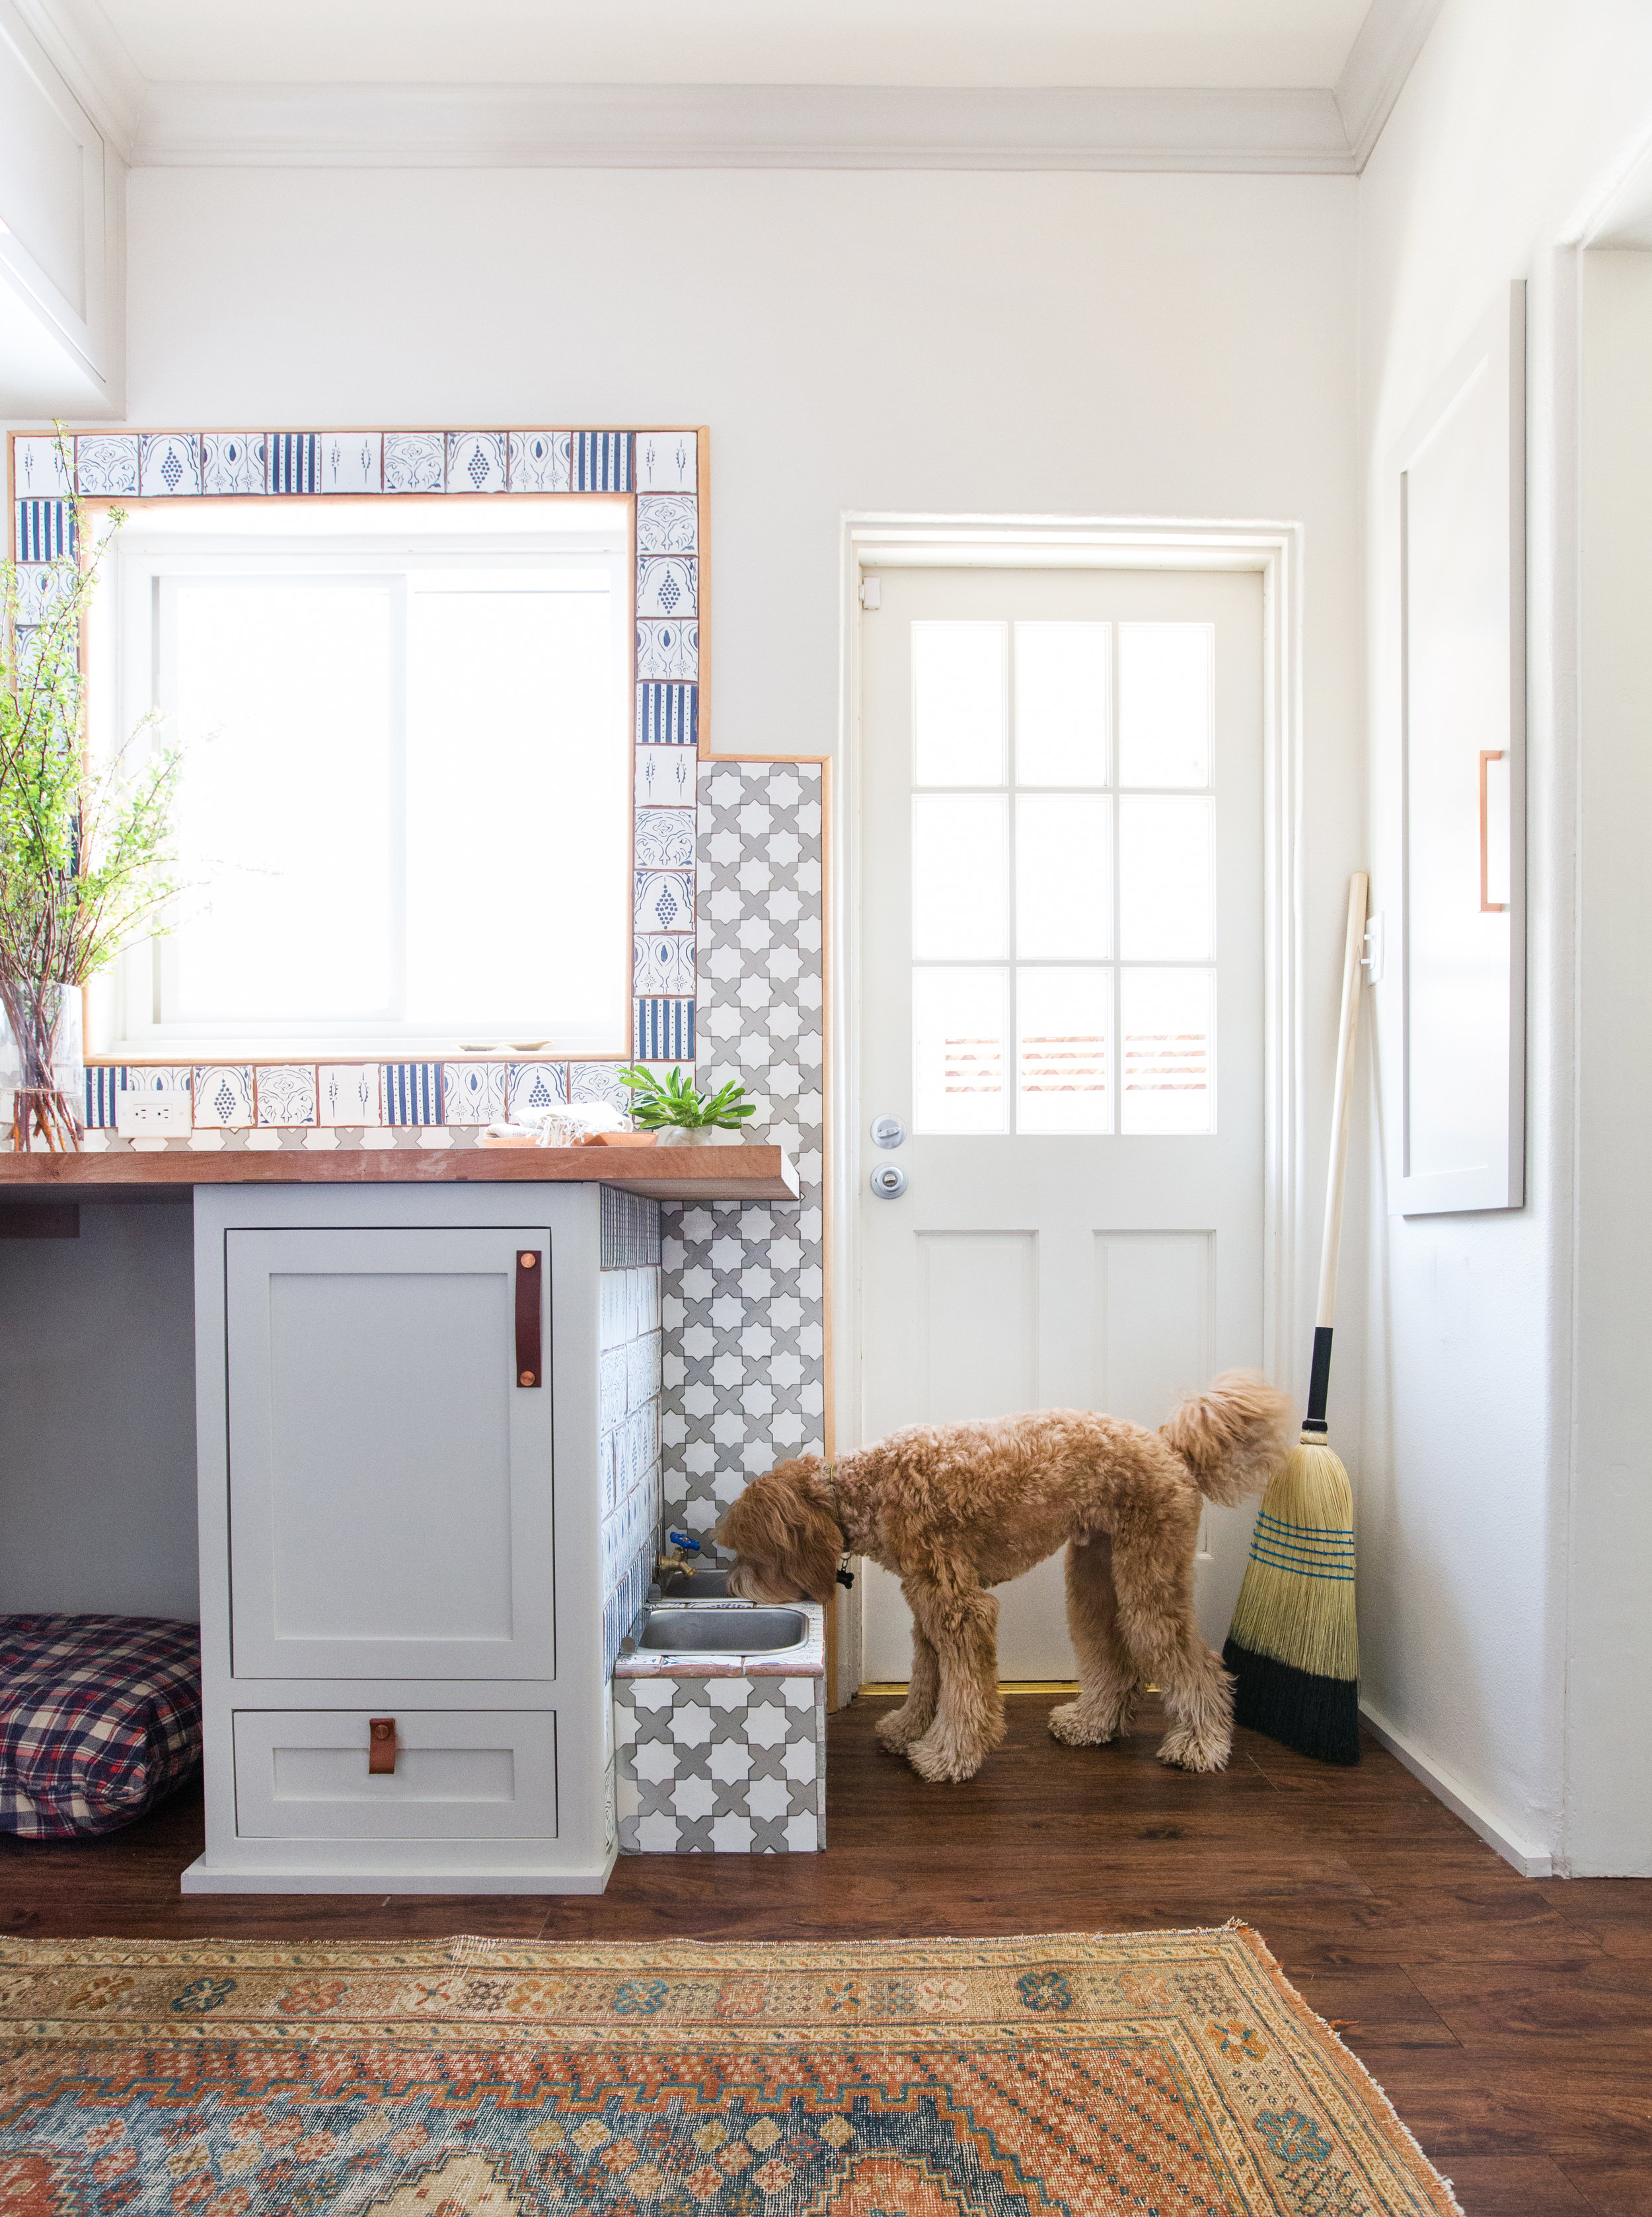 A Utilitarian Space Never Looked So Good: A Fresh Laundry Room Makeover - Copy byCYNTHIA BAXTERDesigner Stefani Stein Gives Tips on Maximizing Storage & Adding Style to a Typically Mundane RoomIt has been estimated that the average mother spends five months of her life doing laundry. Unfortunately, typical laundry rooms are usually pretty uninspiring spaces in which to spend so much time. And chores are already something that we don't look forward to, so why not at least make these spaces more stylish and enjoyable to be in?Designer Stefani Steindid just for her clients in this beautiful laundry room makeover – a shining example of blending form and function. We asked her to share some ideas on how to create beautiful working spaces.full story